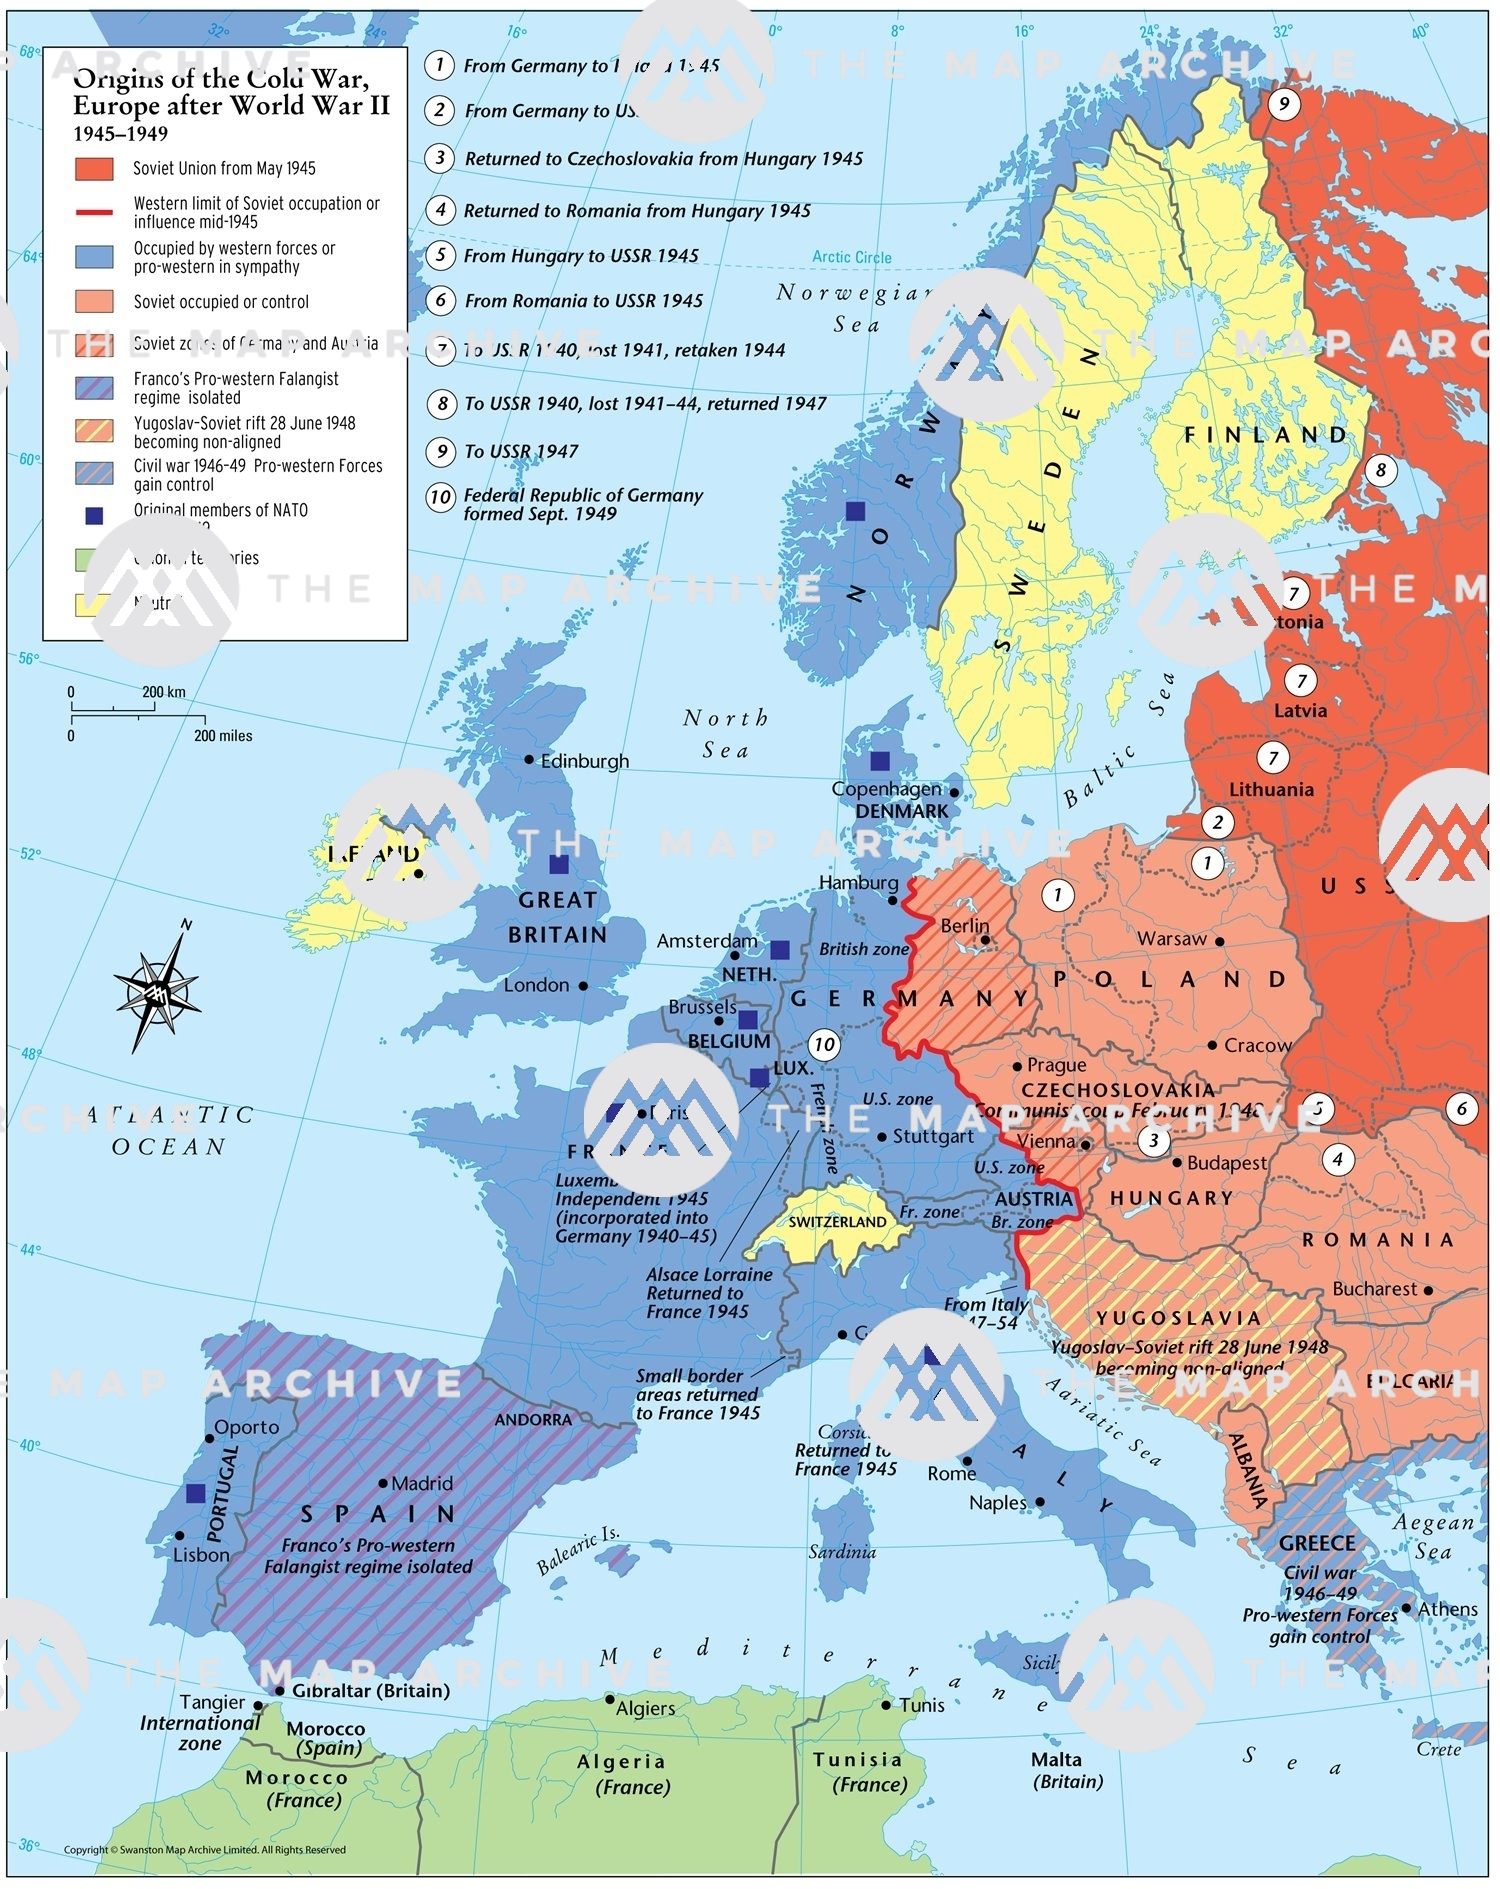 map of europe after ww2 Origins of the Cold War, Europe after World War II 1945–1949